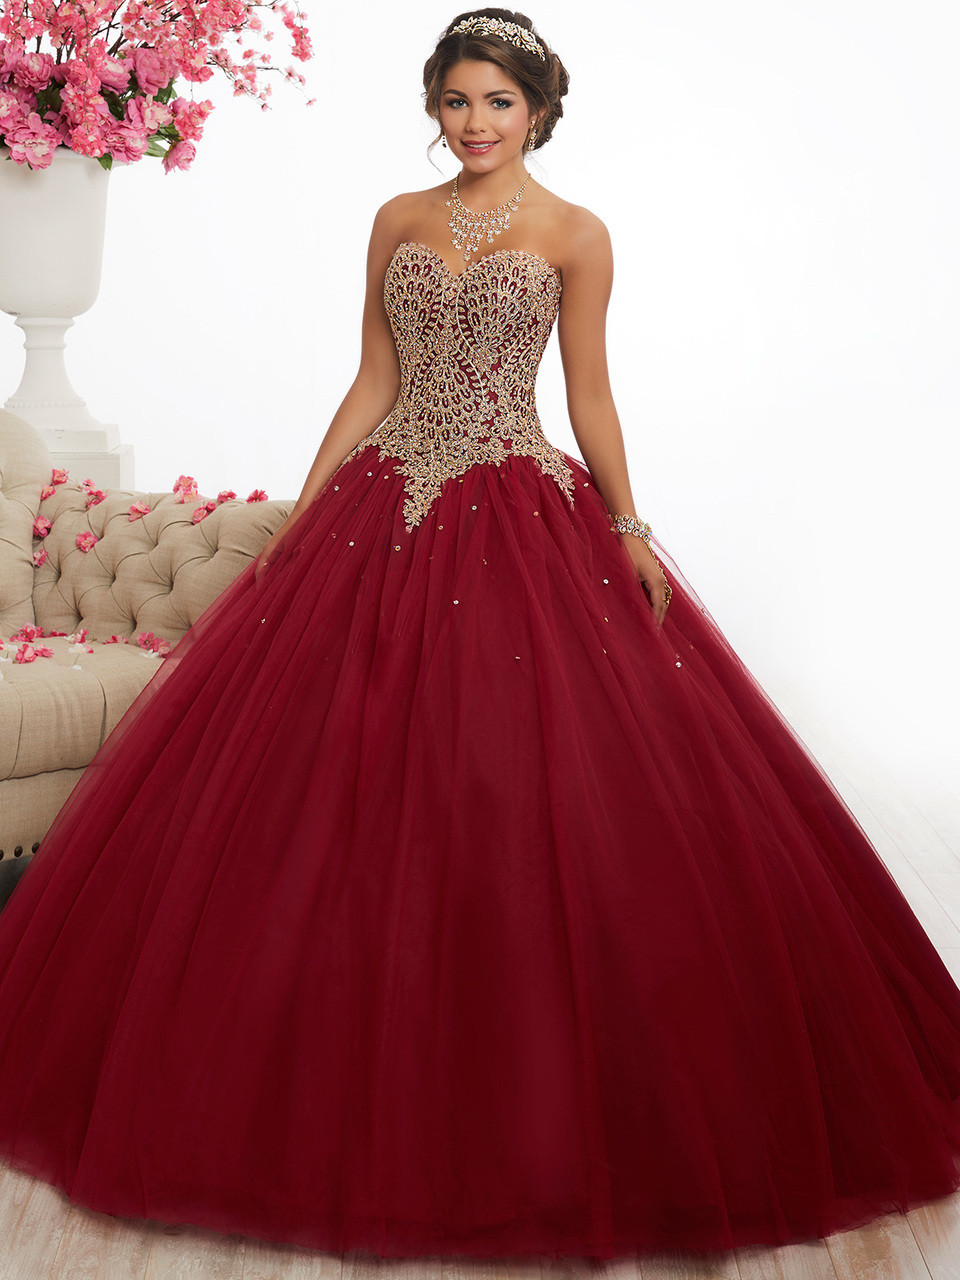 3e015ff2604 gold and wine quinceaneara dress with sweetheart neckline and plain tulle  skirt by fiesta 56341